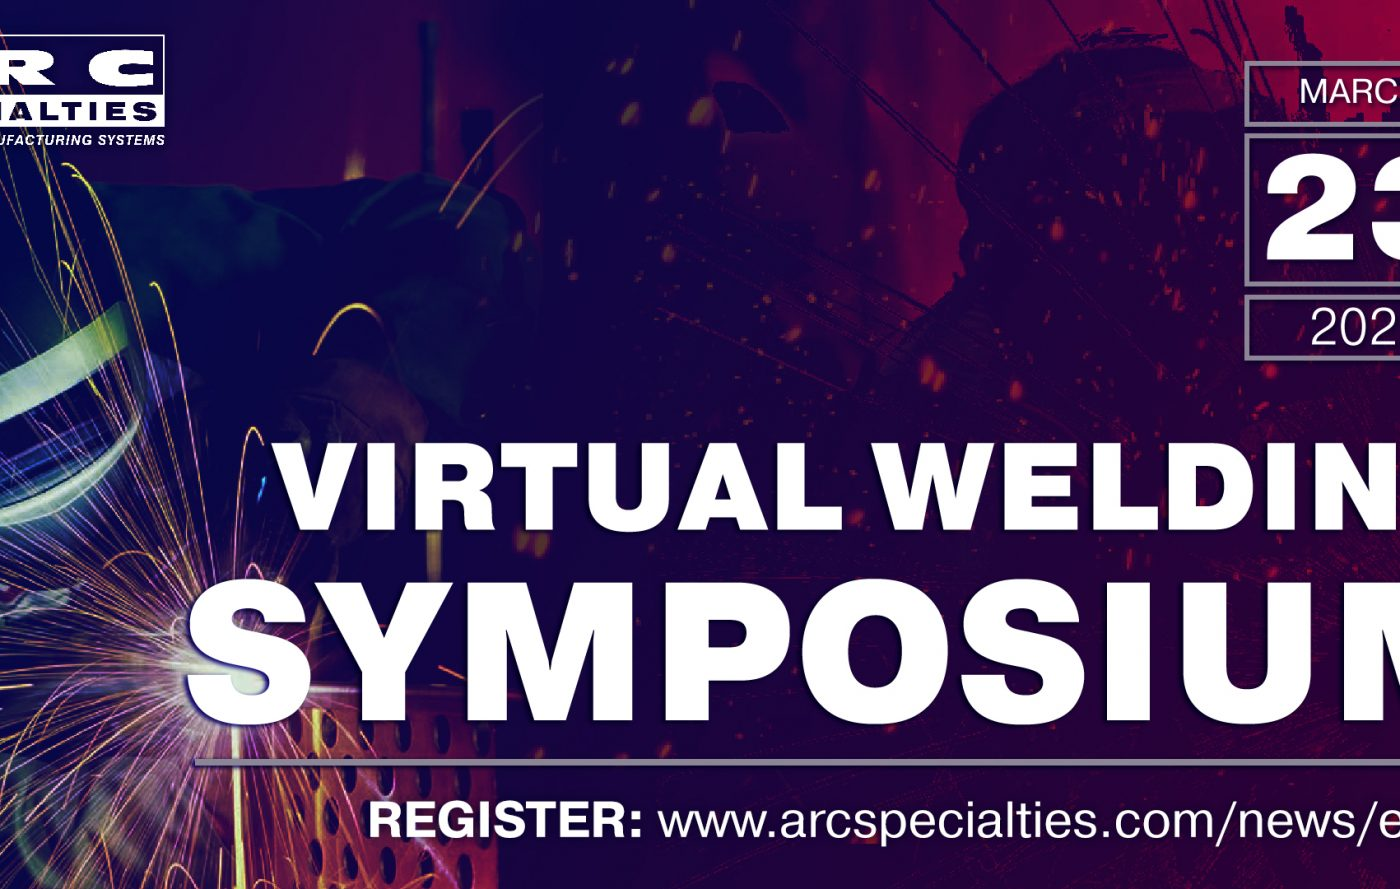 virtual welding symposium march 23, 2021